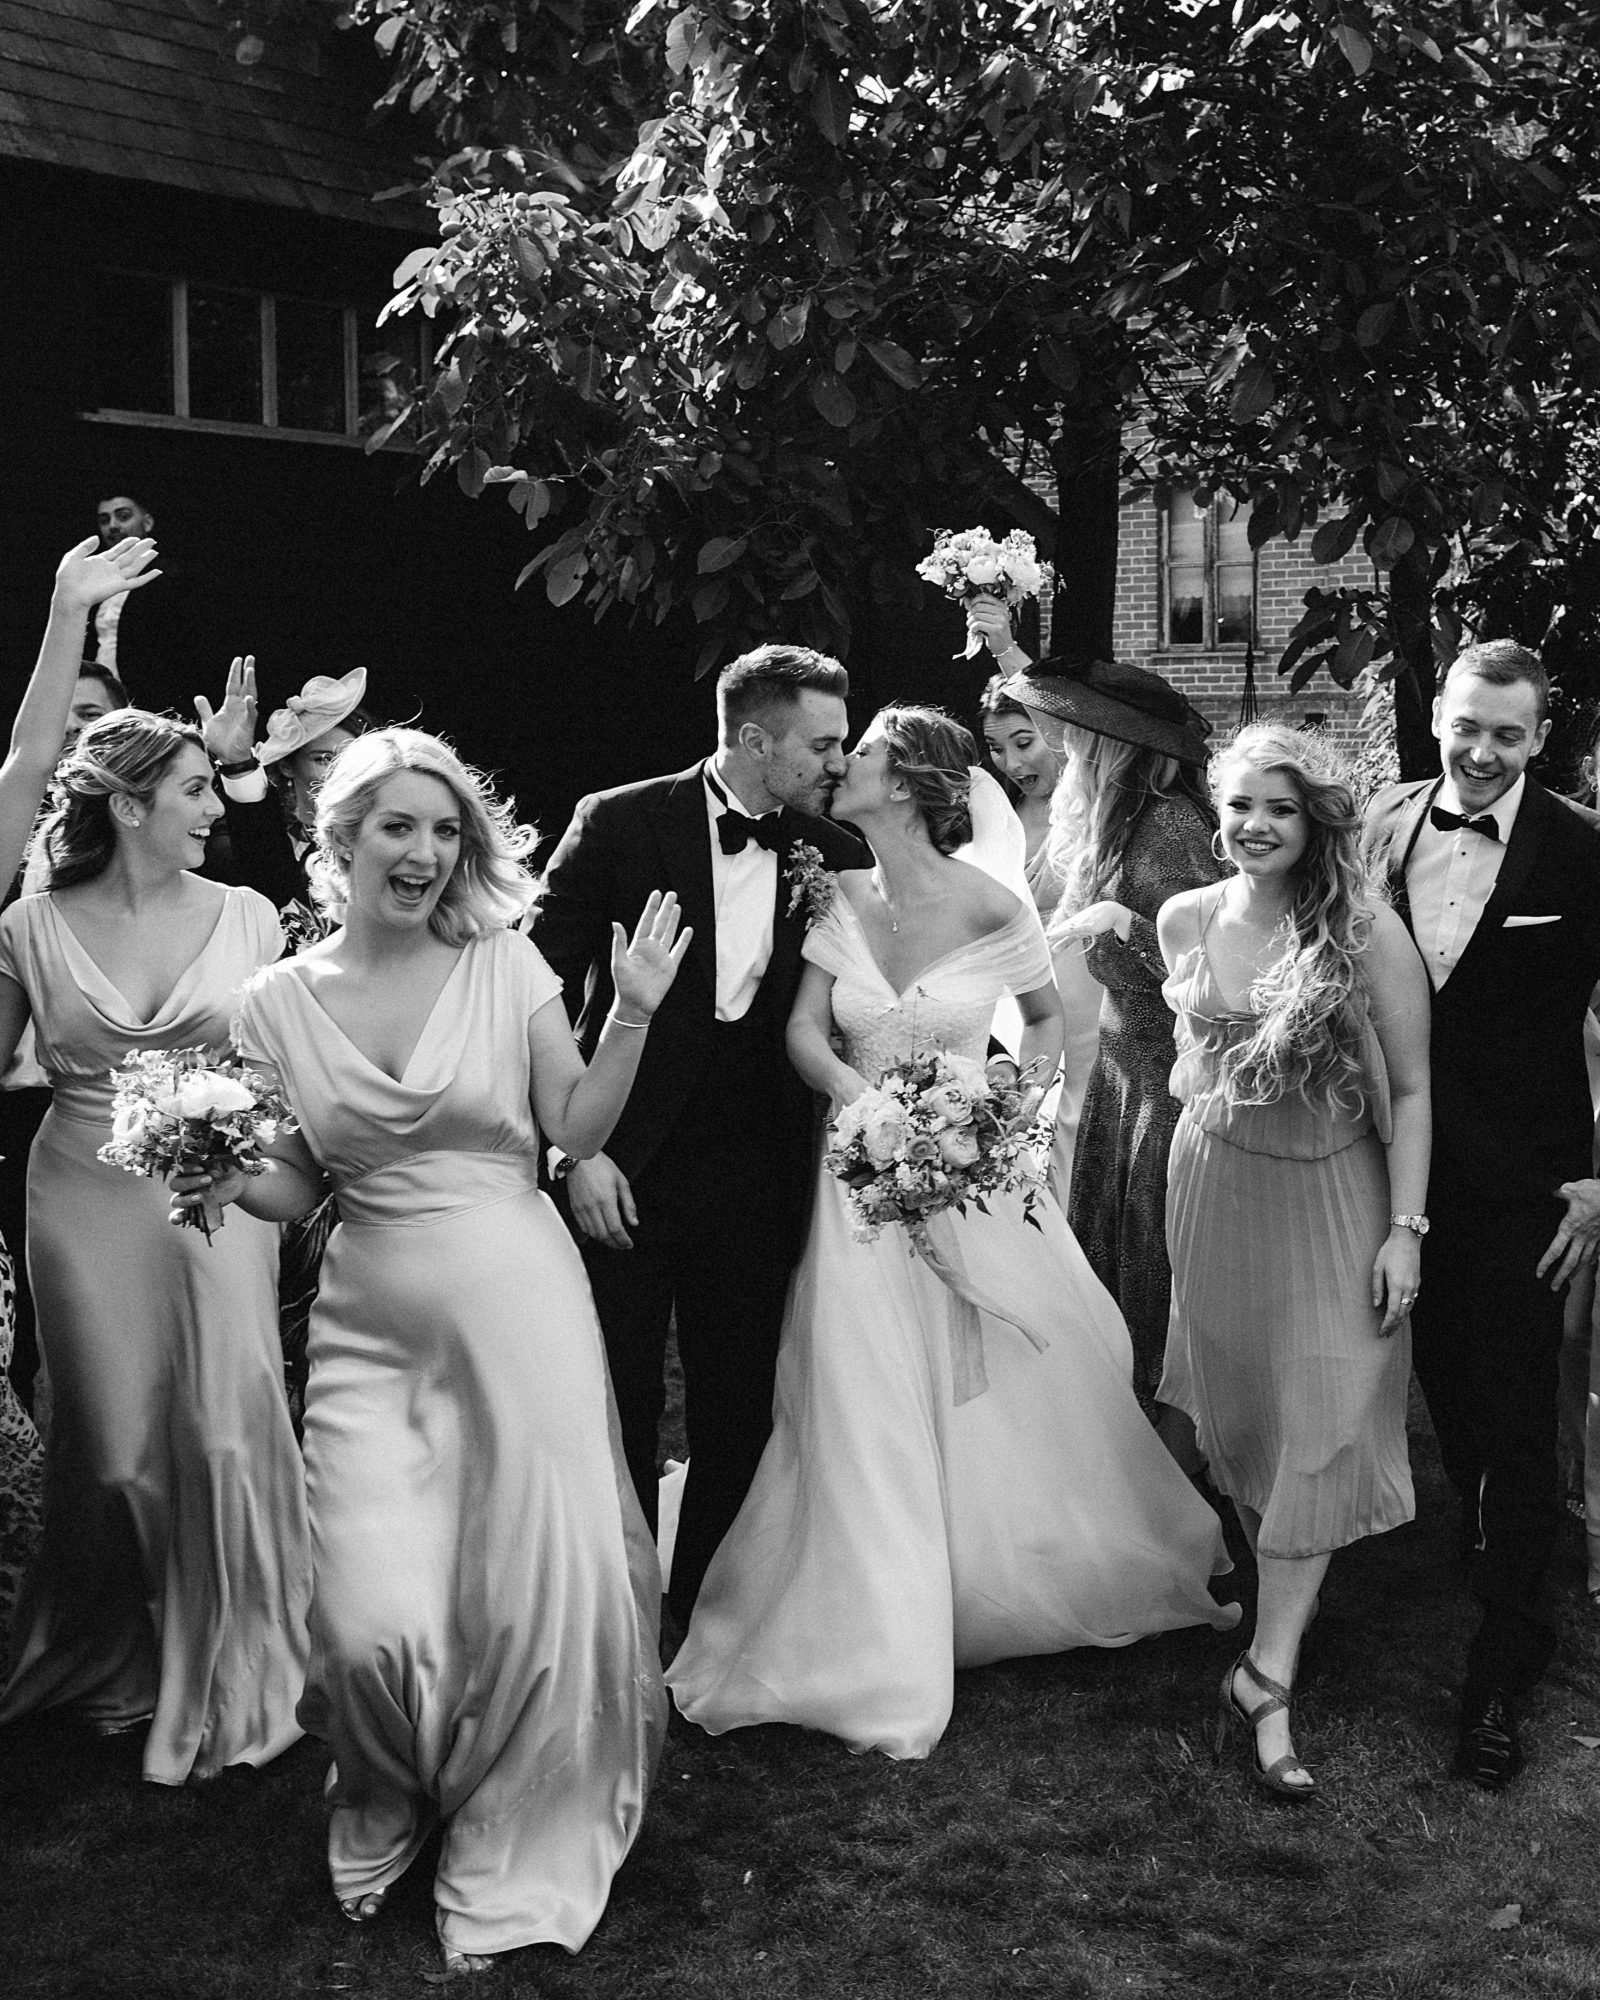 laurie lee wedding couple kiss surrounded by wedding party